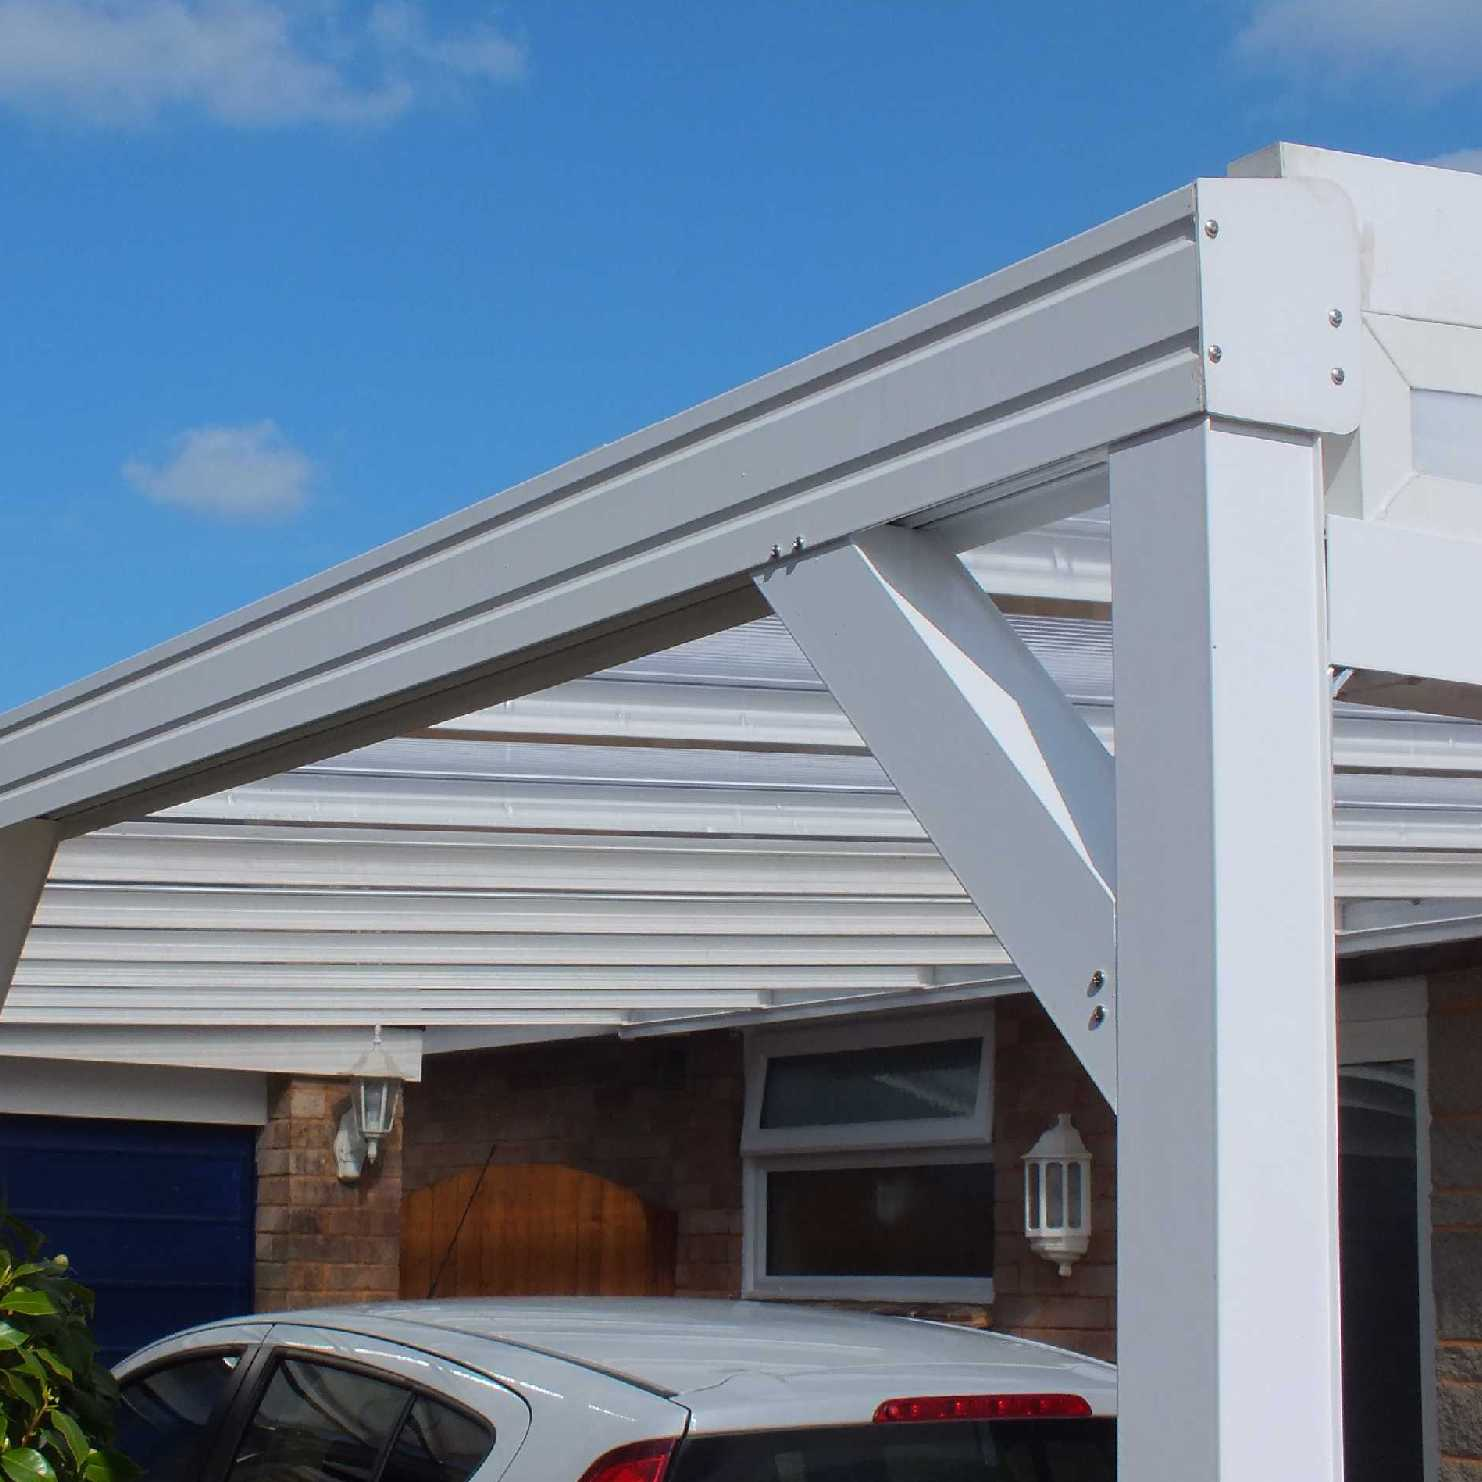 Buy Omega Smart White Lean-To Canopy with 16mm Polycarbonate Glazing - 4.2m (W) x 3.5m (P), (3) Supporting Posts online today